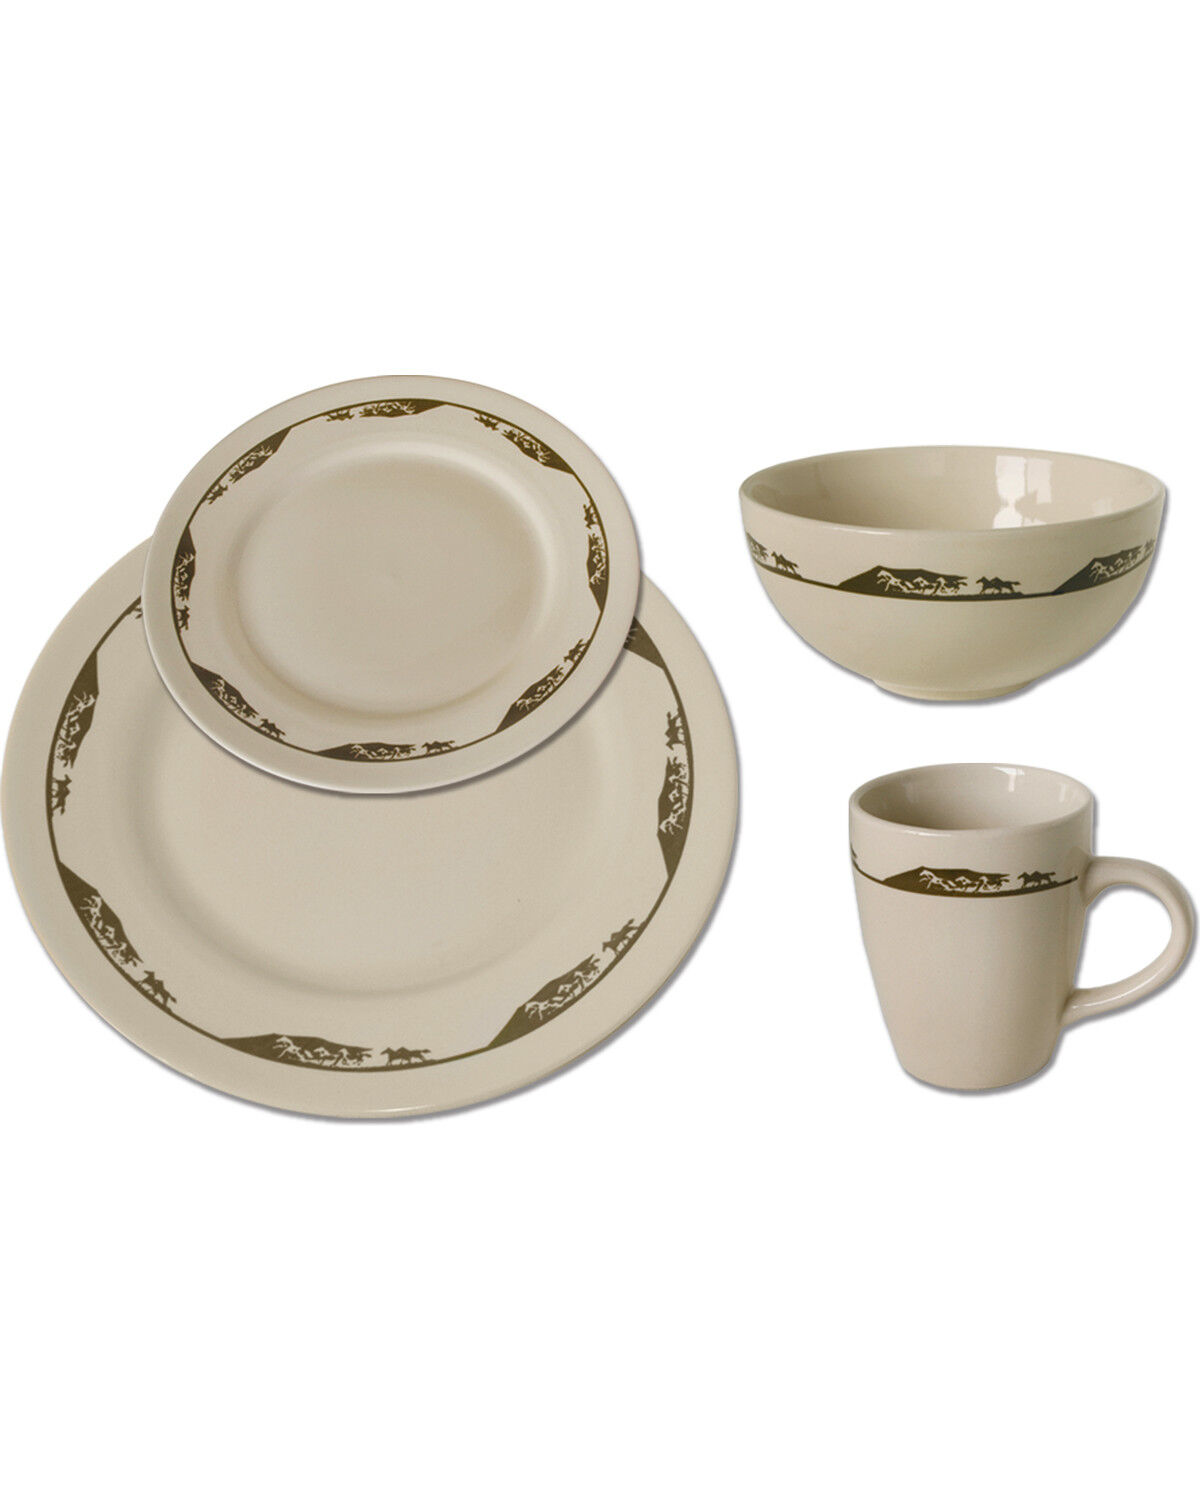 Moss Brothers 16-piece Running Horse Dinnerware Set  Ivory hi-res  sc 1 st  Sheplers & Moss Brothers 16-piece Running Horse Dinnerware Set | Sheplers